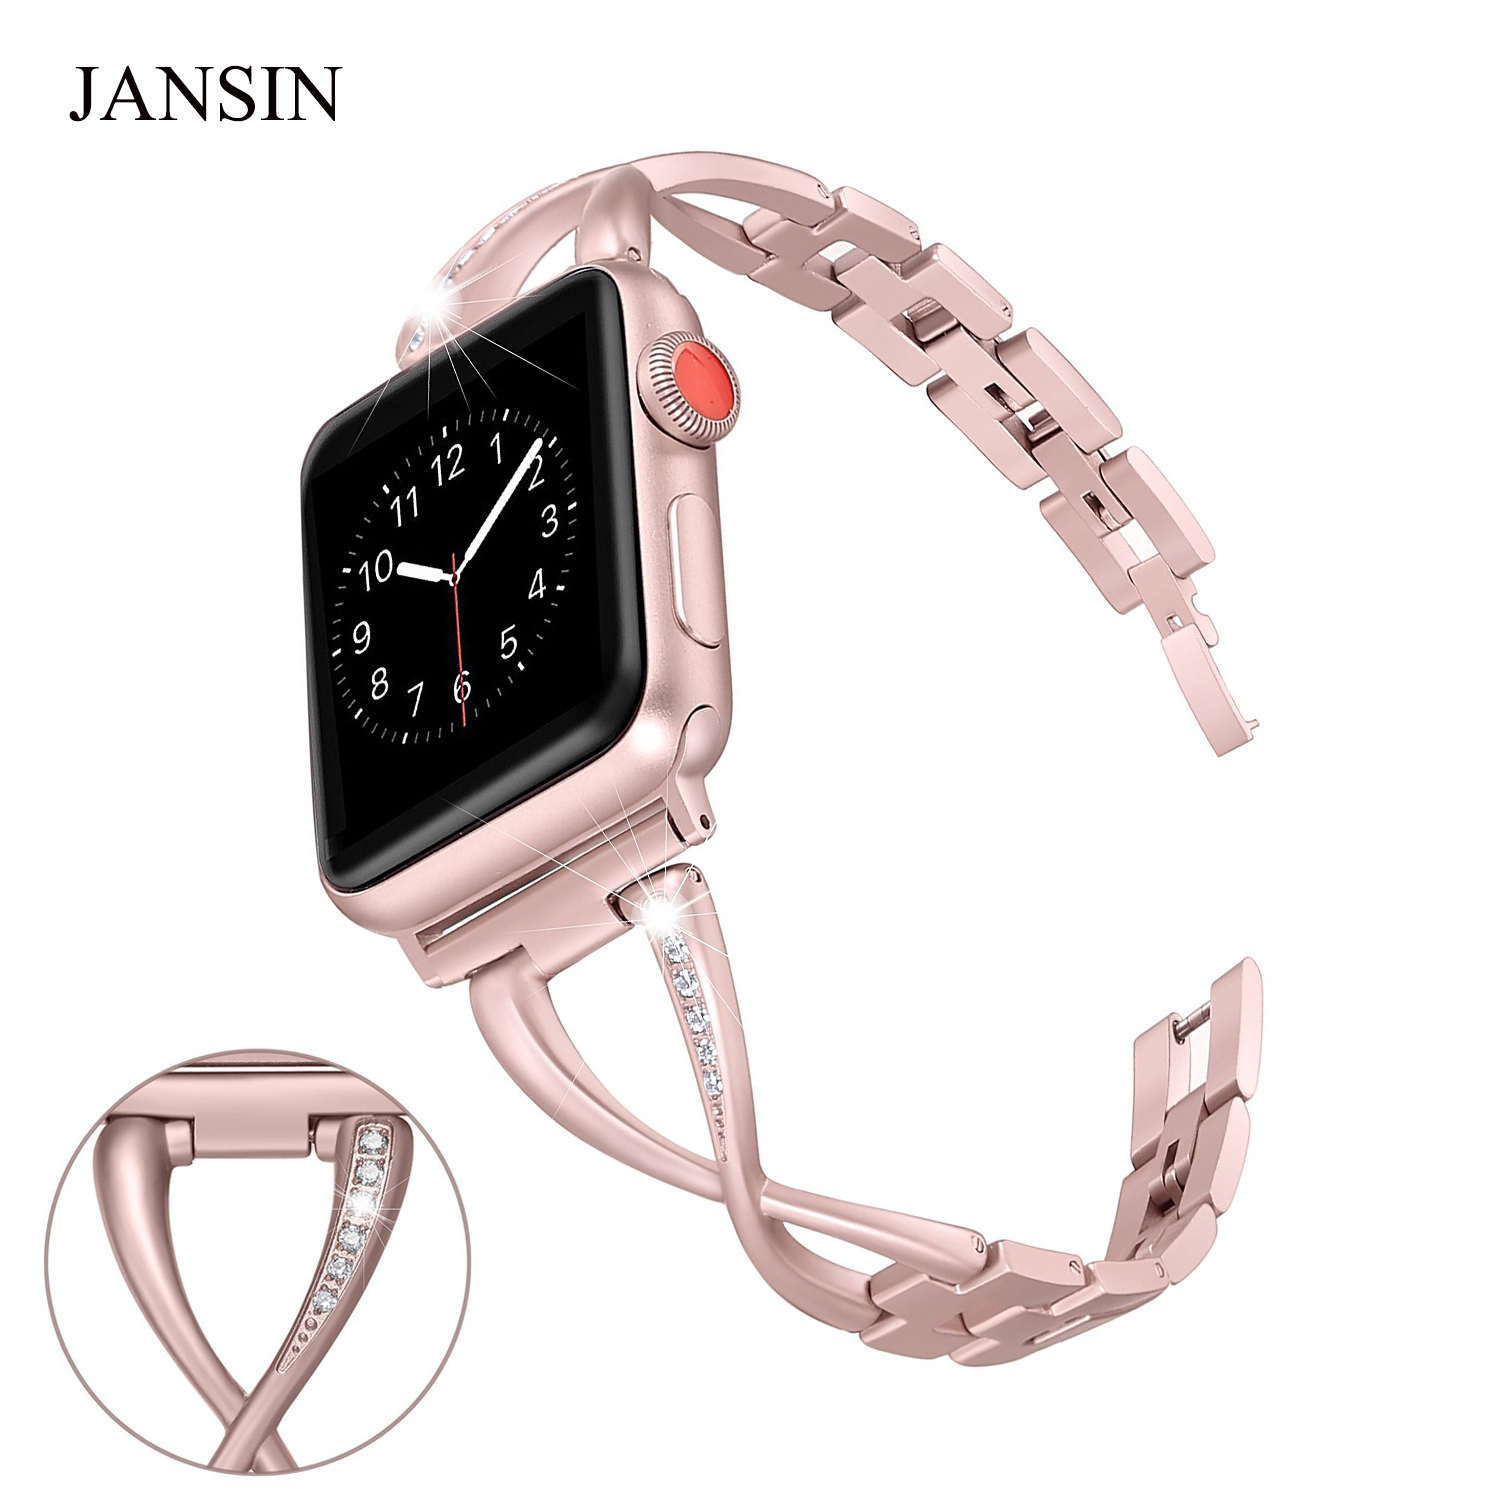 JANSIN Women Watch band for Apple Watch Bands 38mm/42mm Adjustable Stainless Steel Strap for iwatch series 3 2 1 Bracelet ...